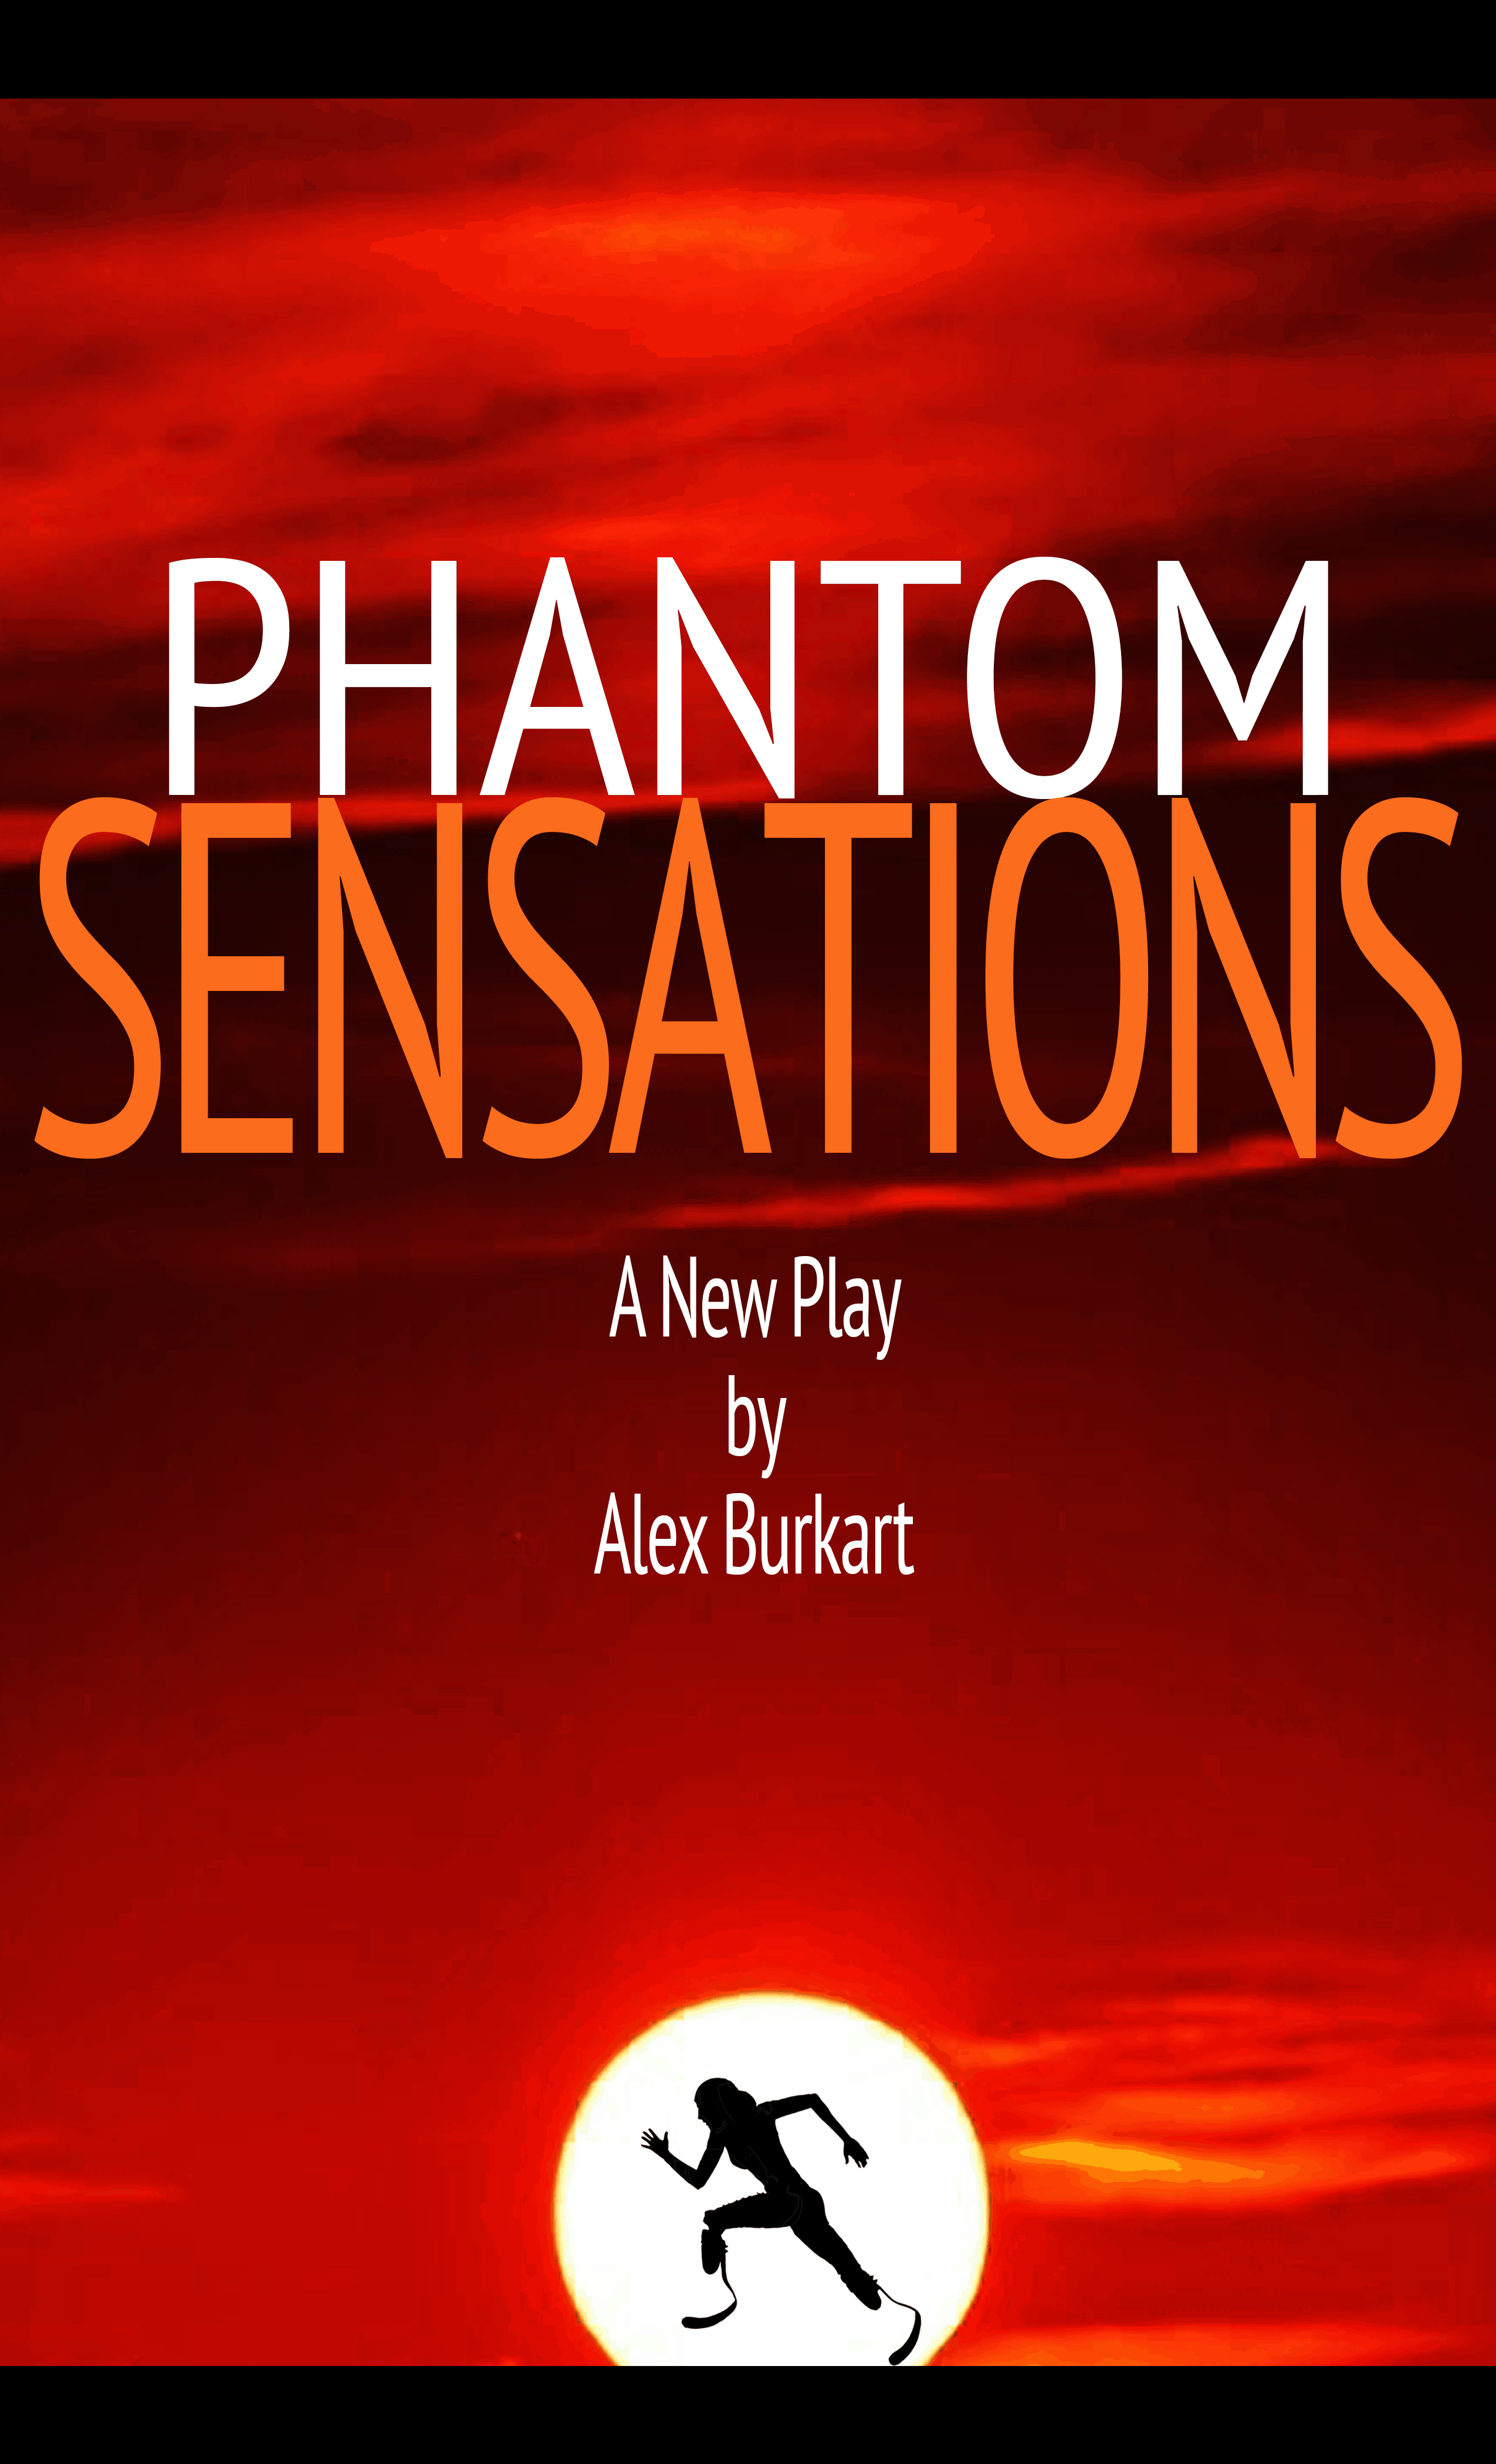 Phantom Sensations by Alex Burkart